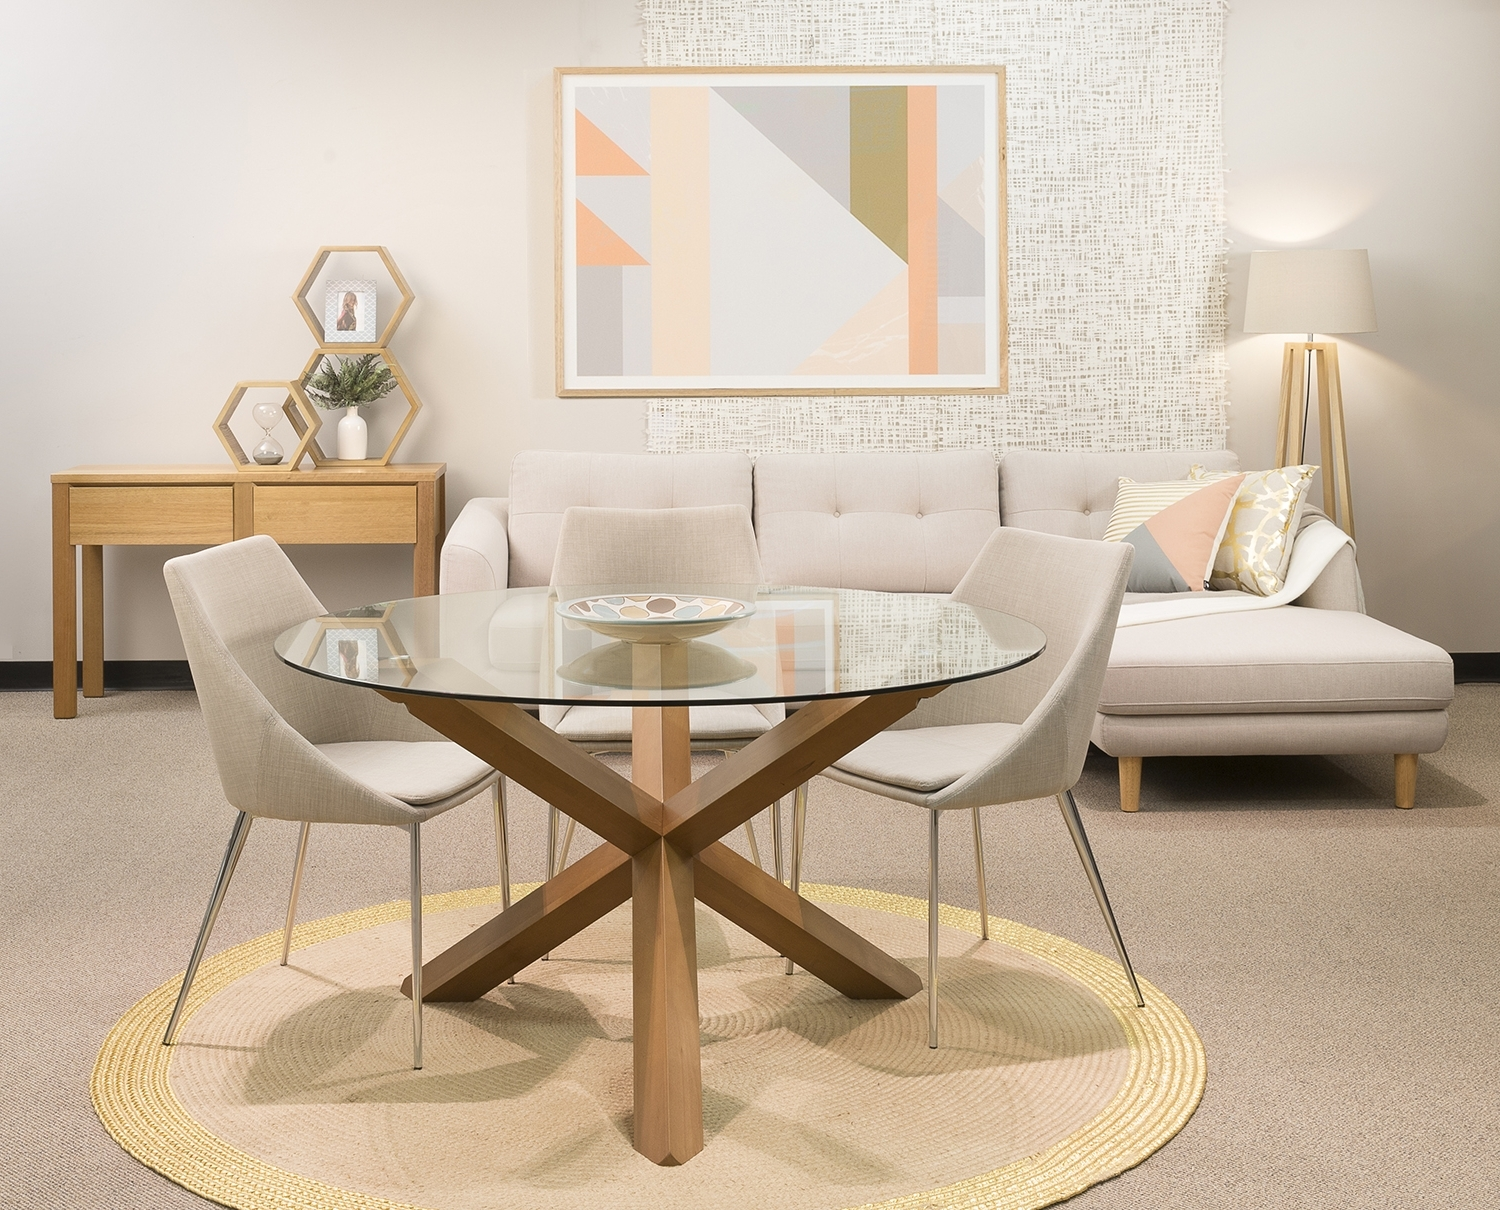 Dezign Furniture & Homewares Stores – Sydney Throughout Glass Dining Tables With Oak Legs (View 15 of 25)